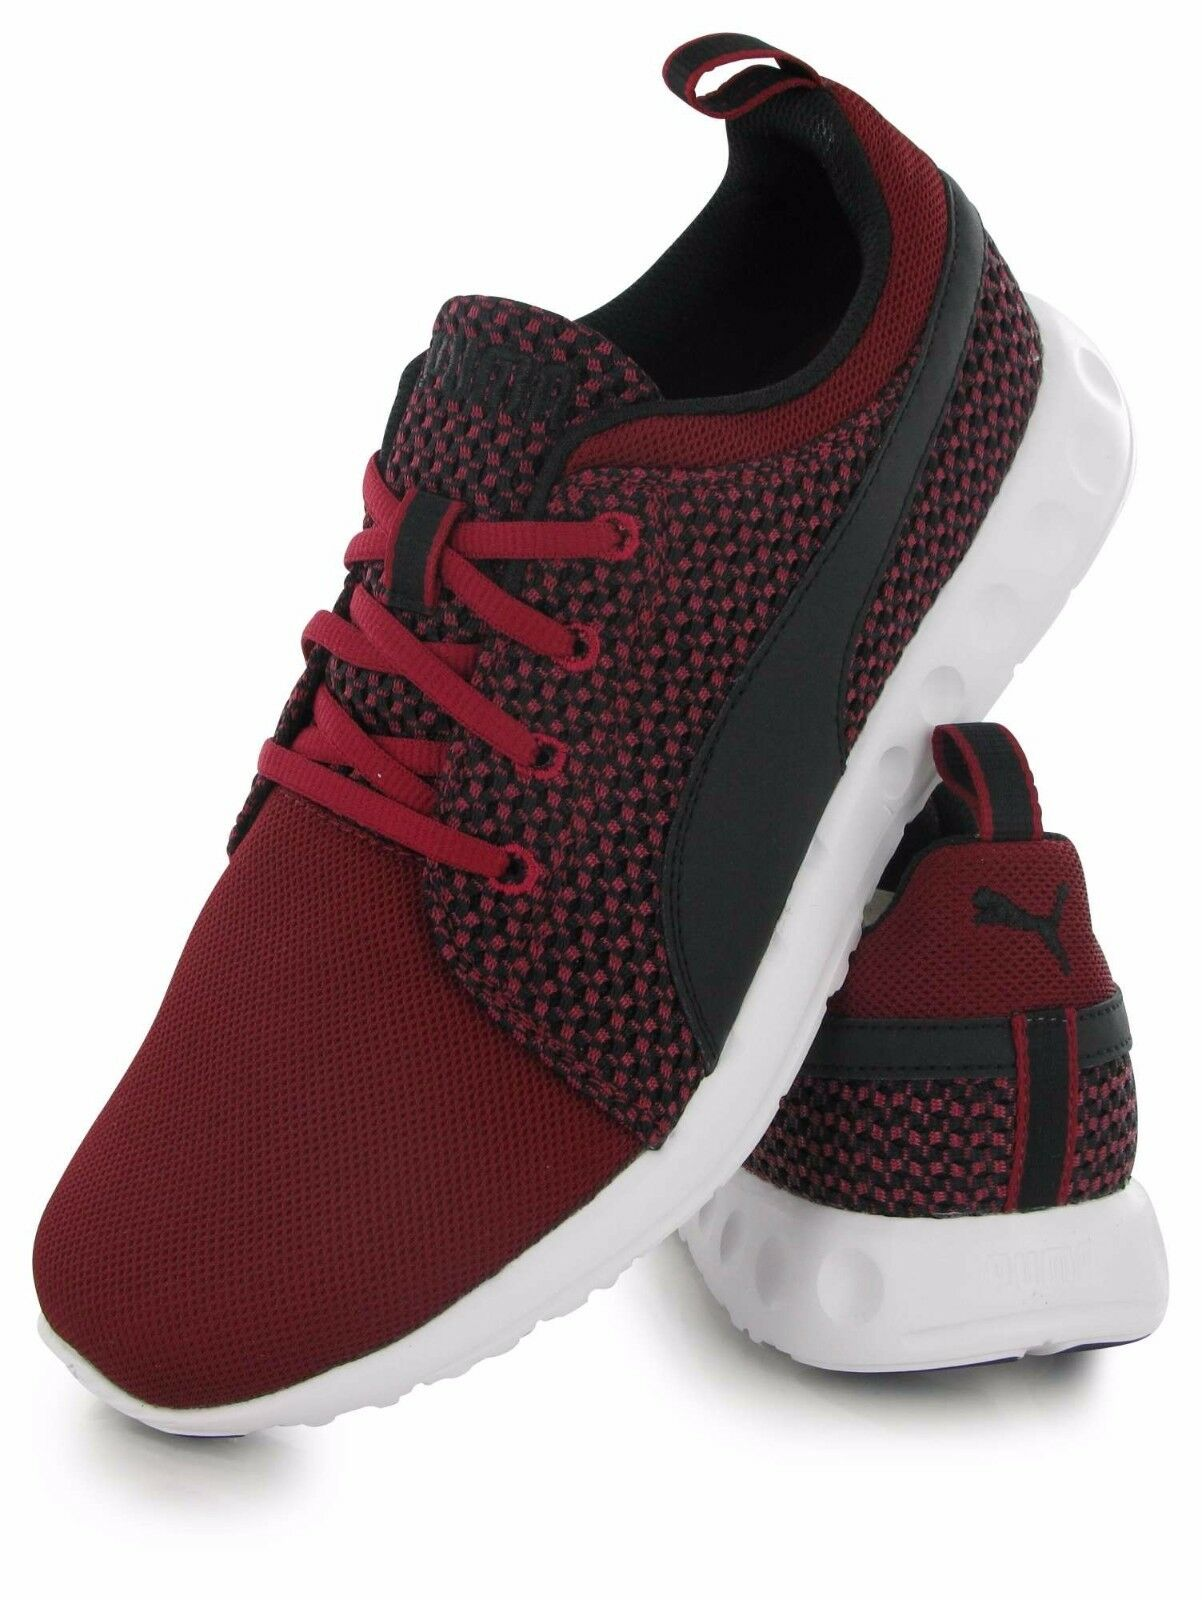 NIB PUMA Men's Carson Runner Knit Lace-Up Fashion Sneakers size 13US